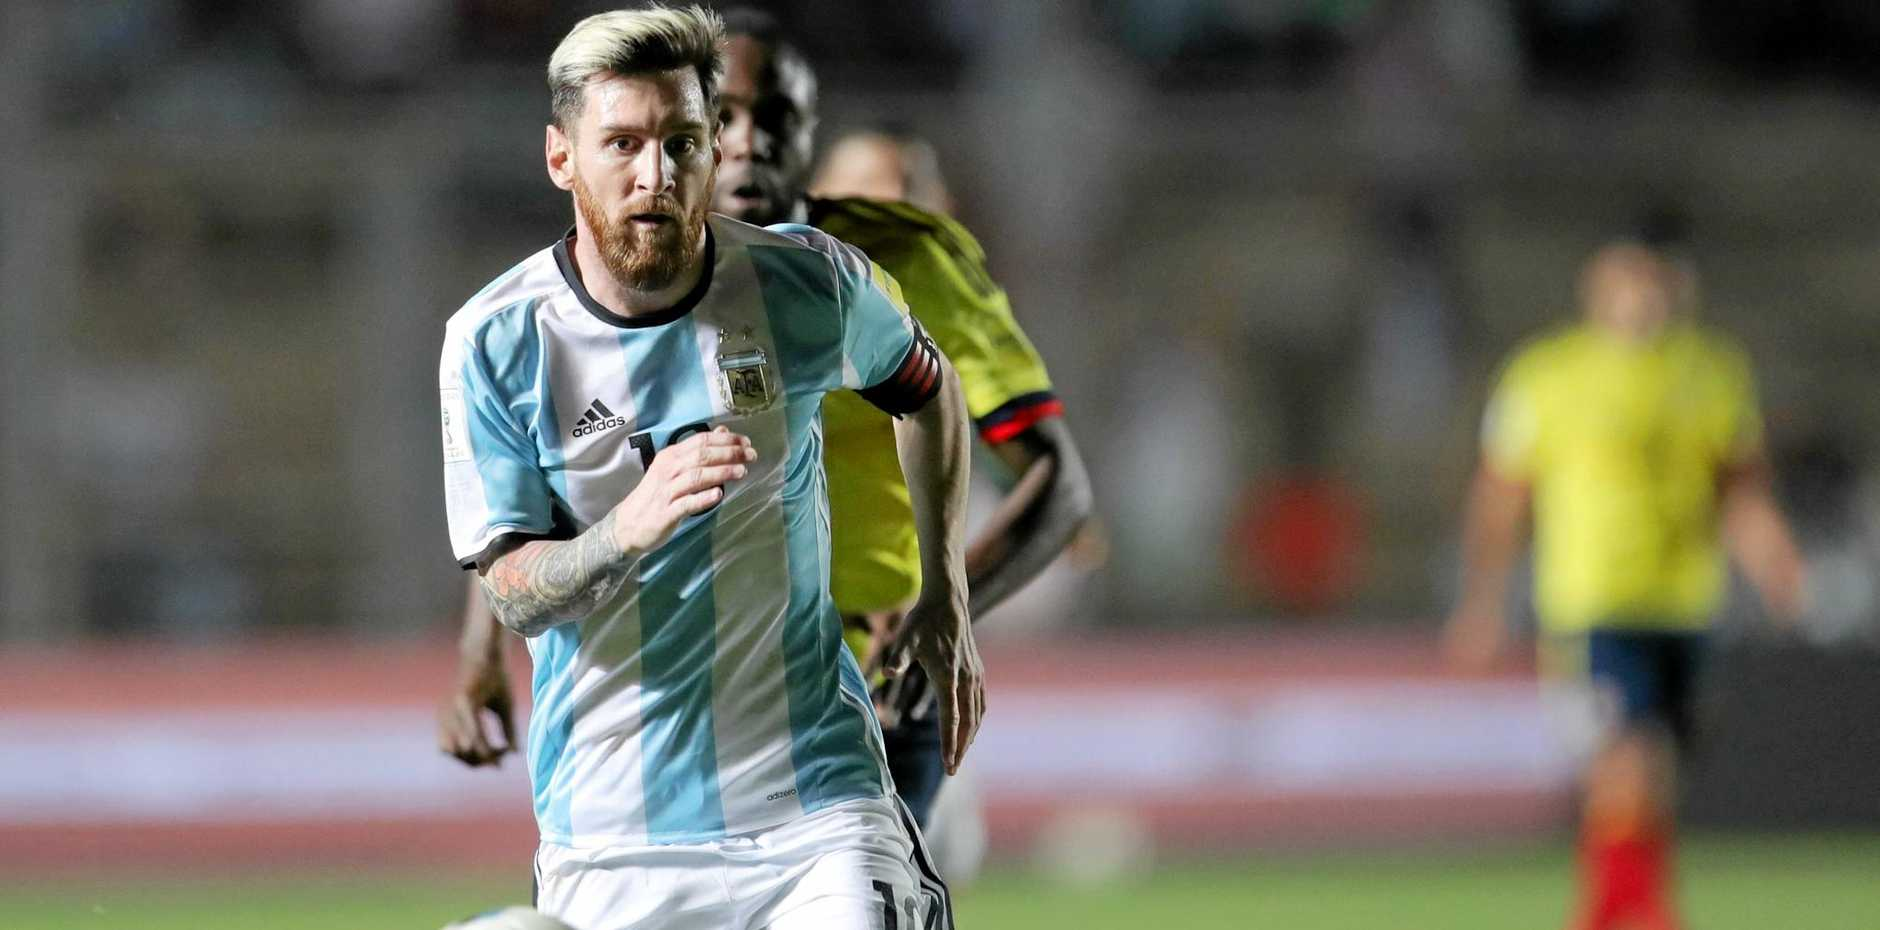 Argentina's Lionel Messi in action against Colombia in a 2018 World Cup qualifier in San Juan.